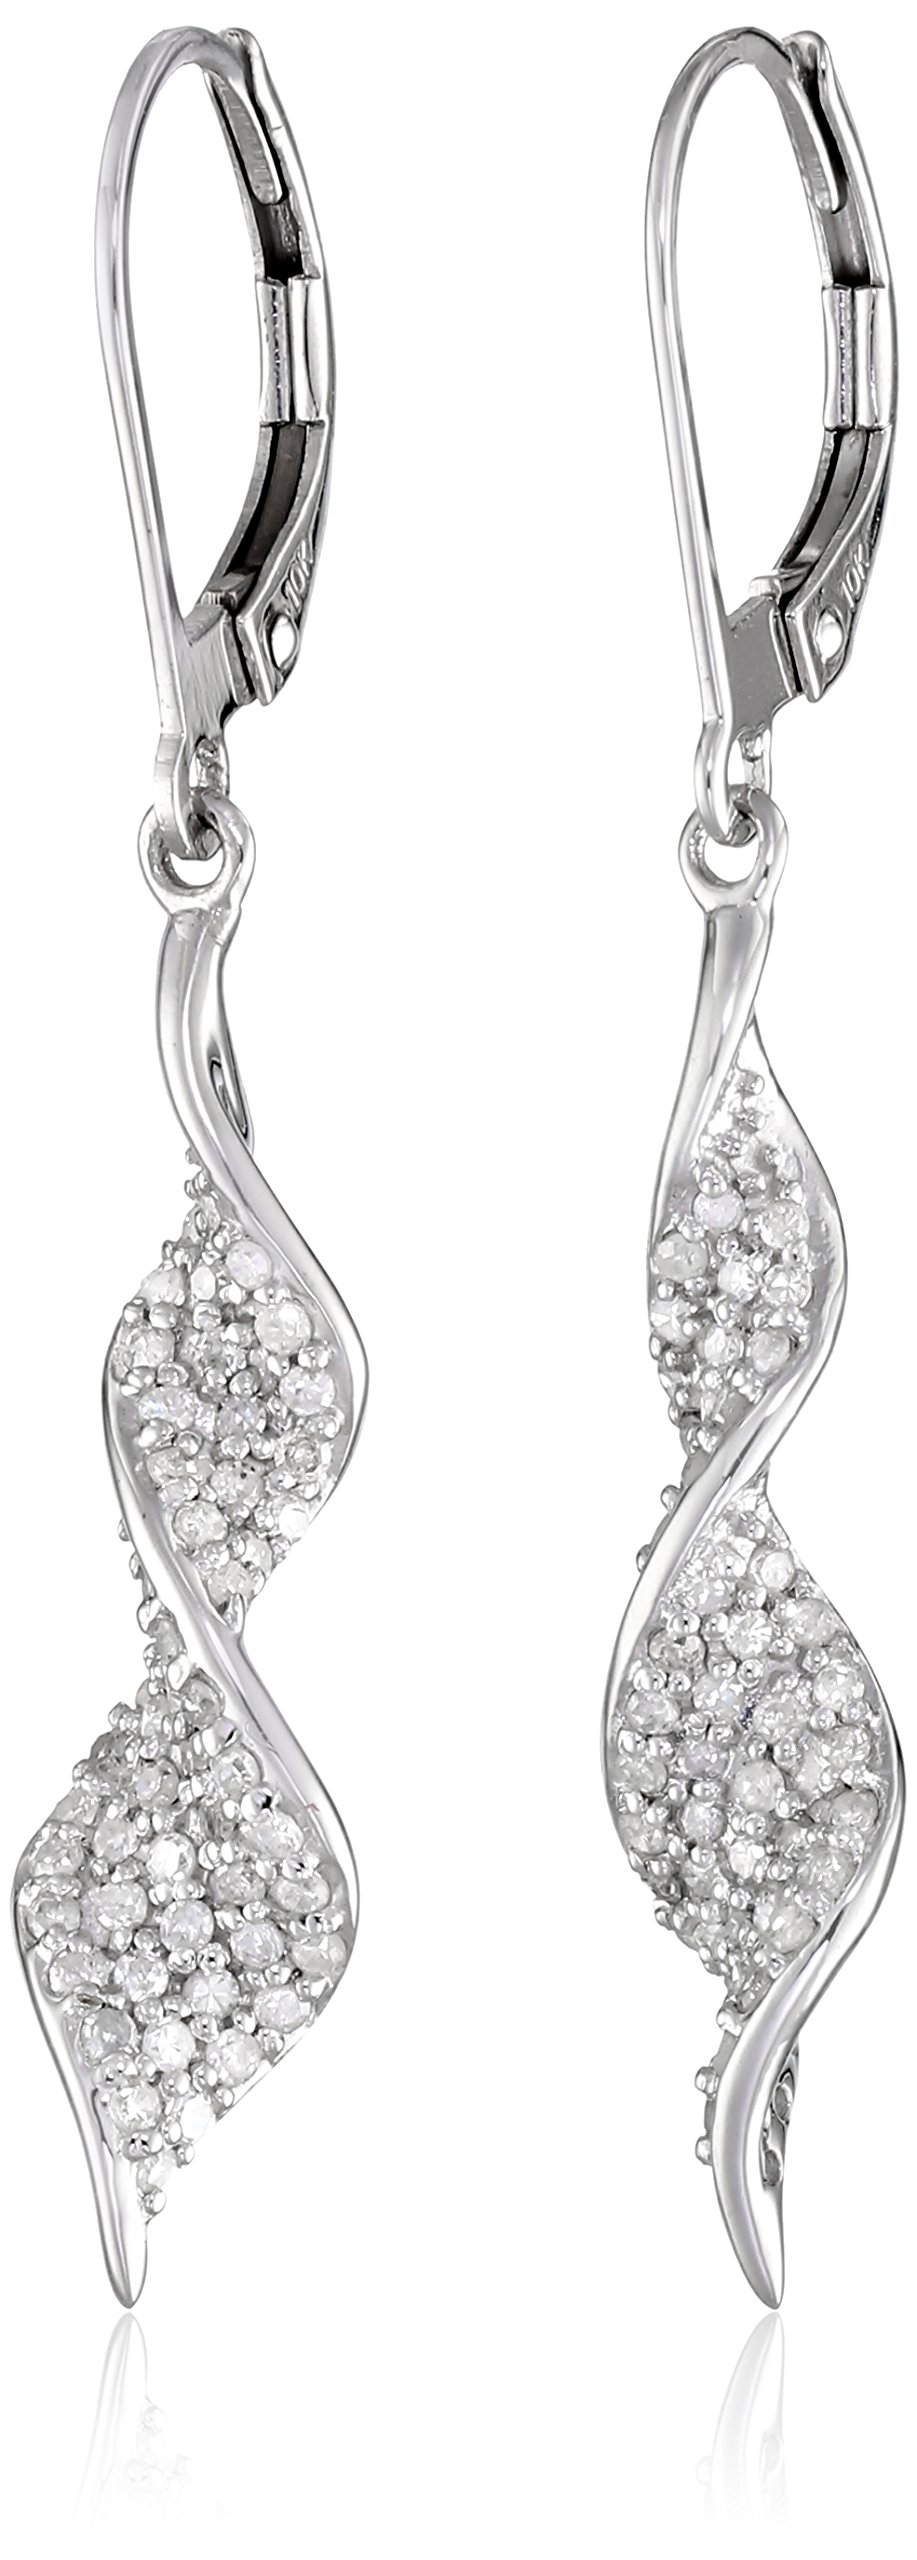 10k White Gold Diamond Spiral Drop Earrings (1/2 cttw, I-J Color, I2-I3 Clarity)